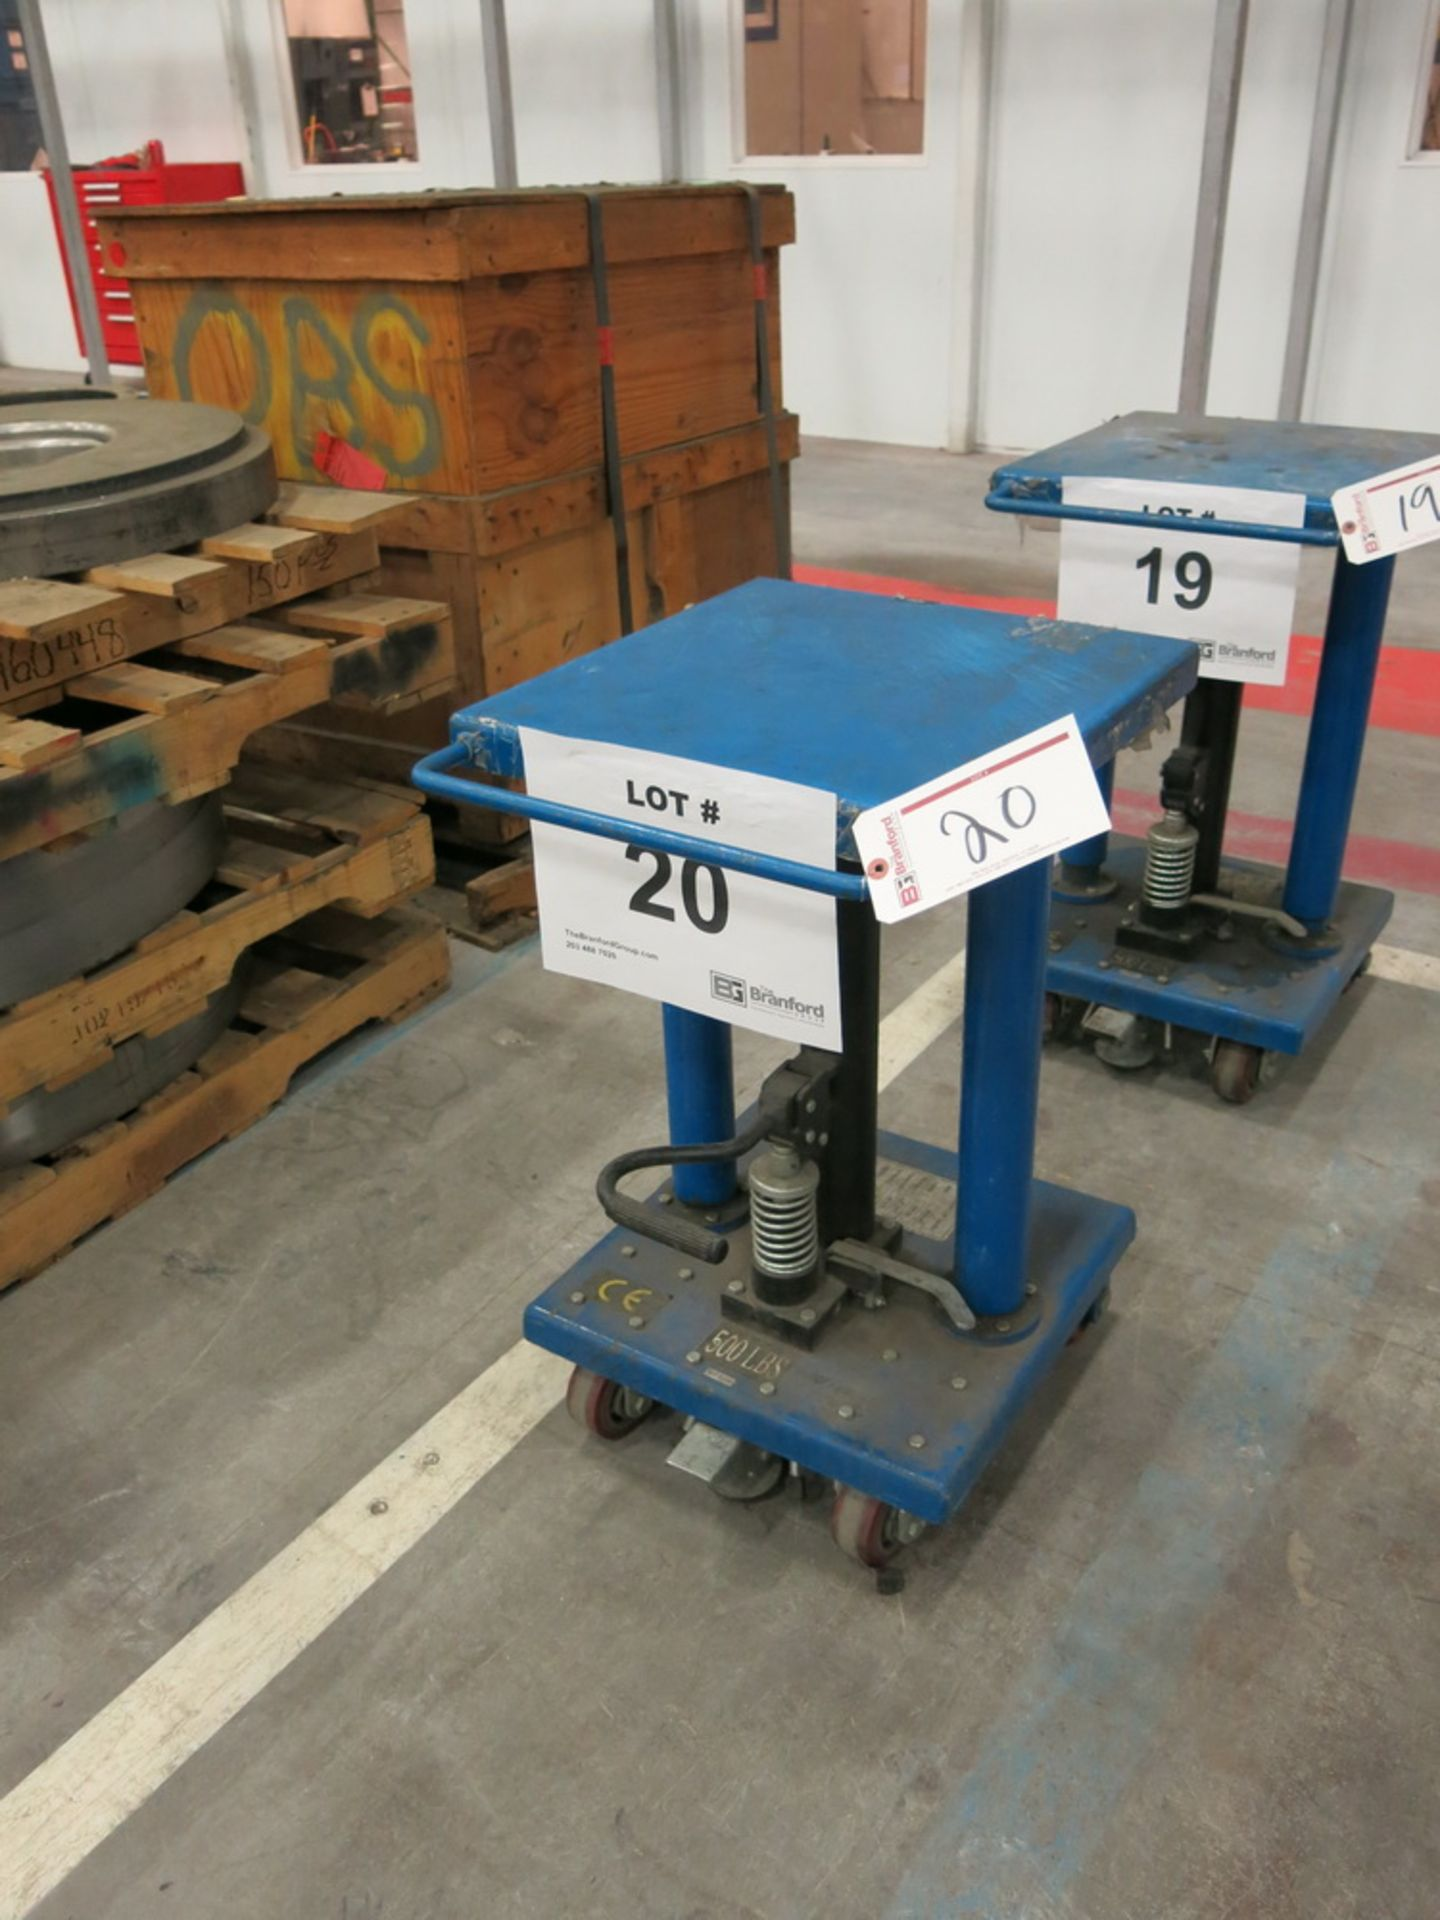 "Lot 20 - 2014 Hydraulic Die Lift Cart, 500 Lb Cap. 18"" x 18"""